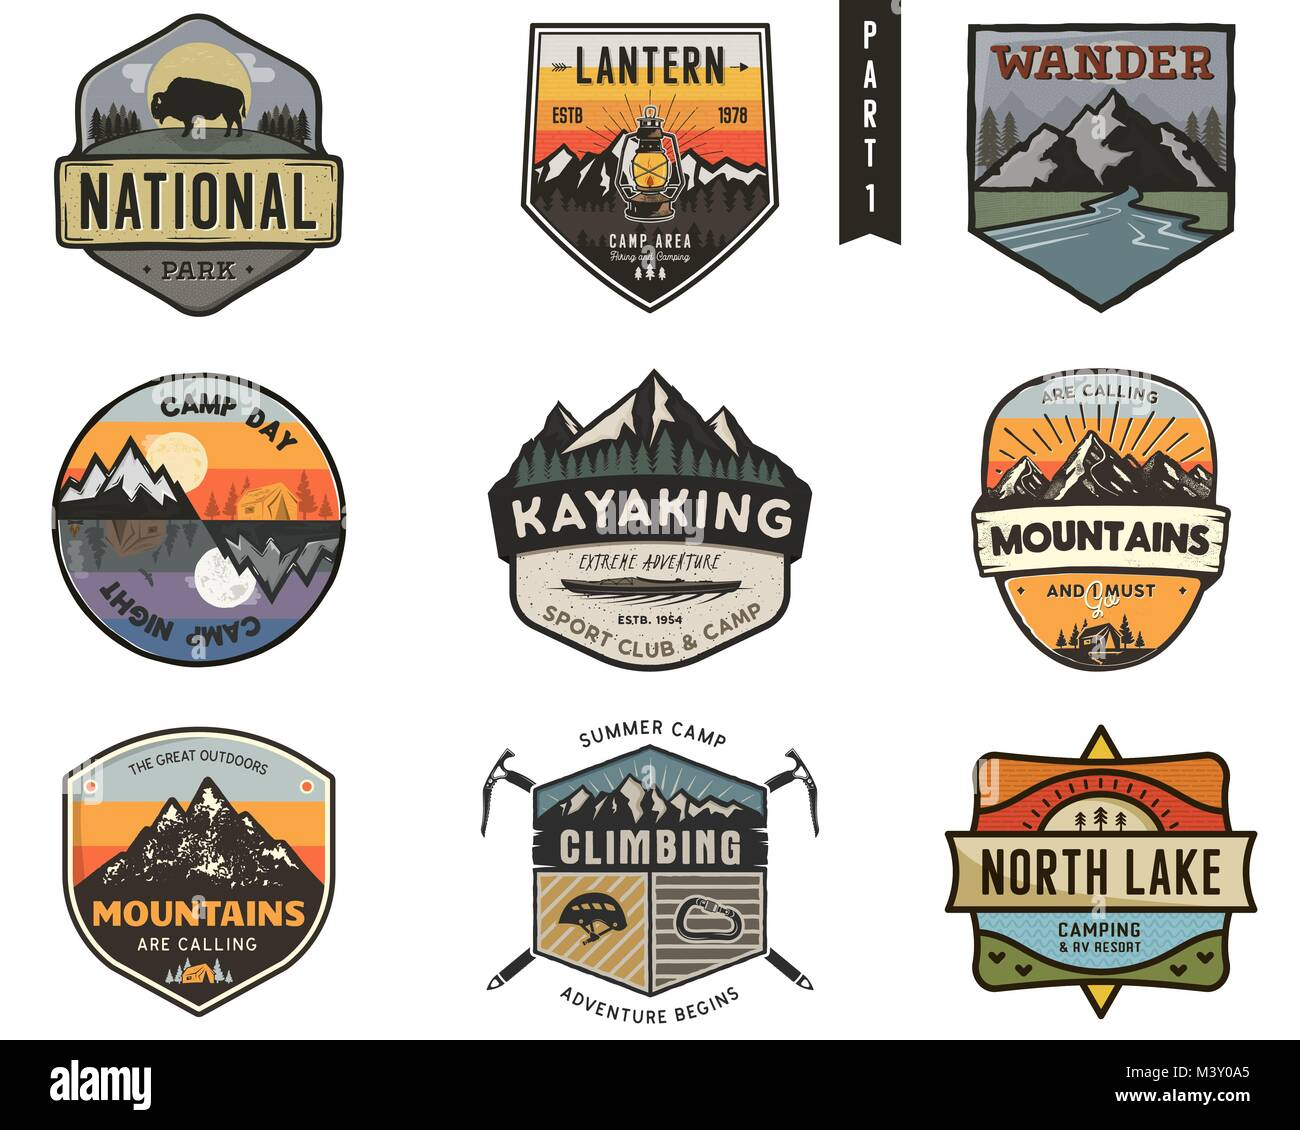 Set of vintage hand drawn travel badges. Camping labels concepts. Mountain expedition logo designs. Travel badges. Stock Vector